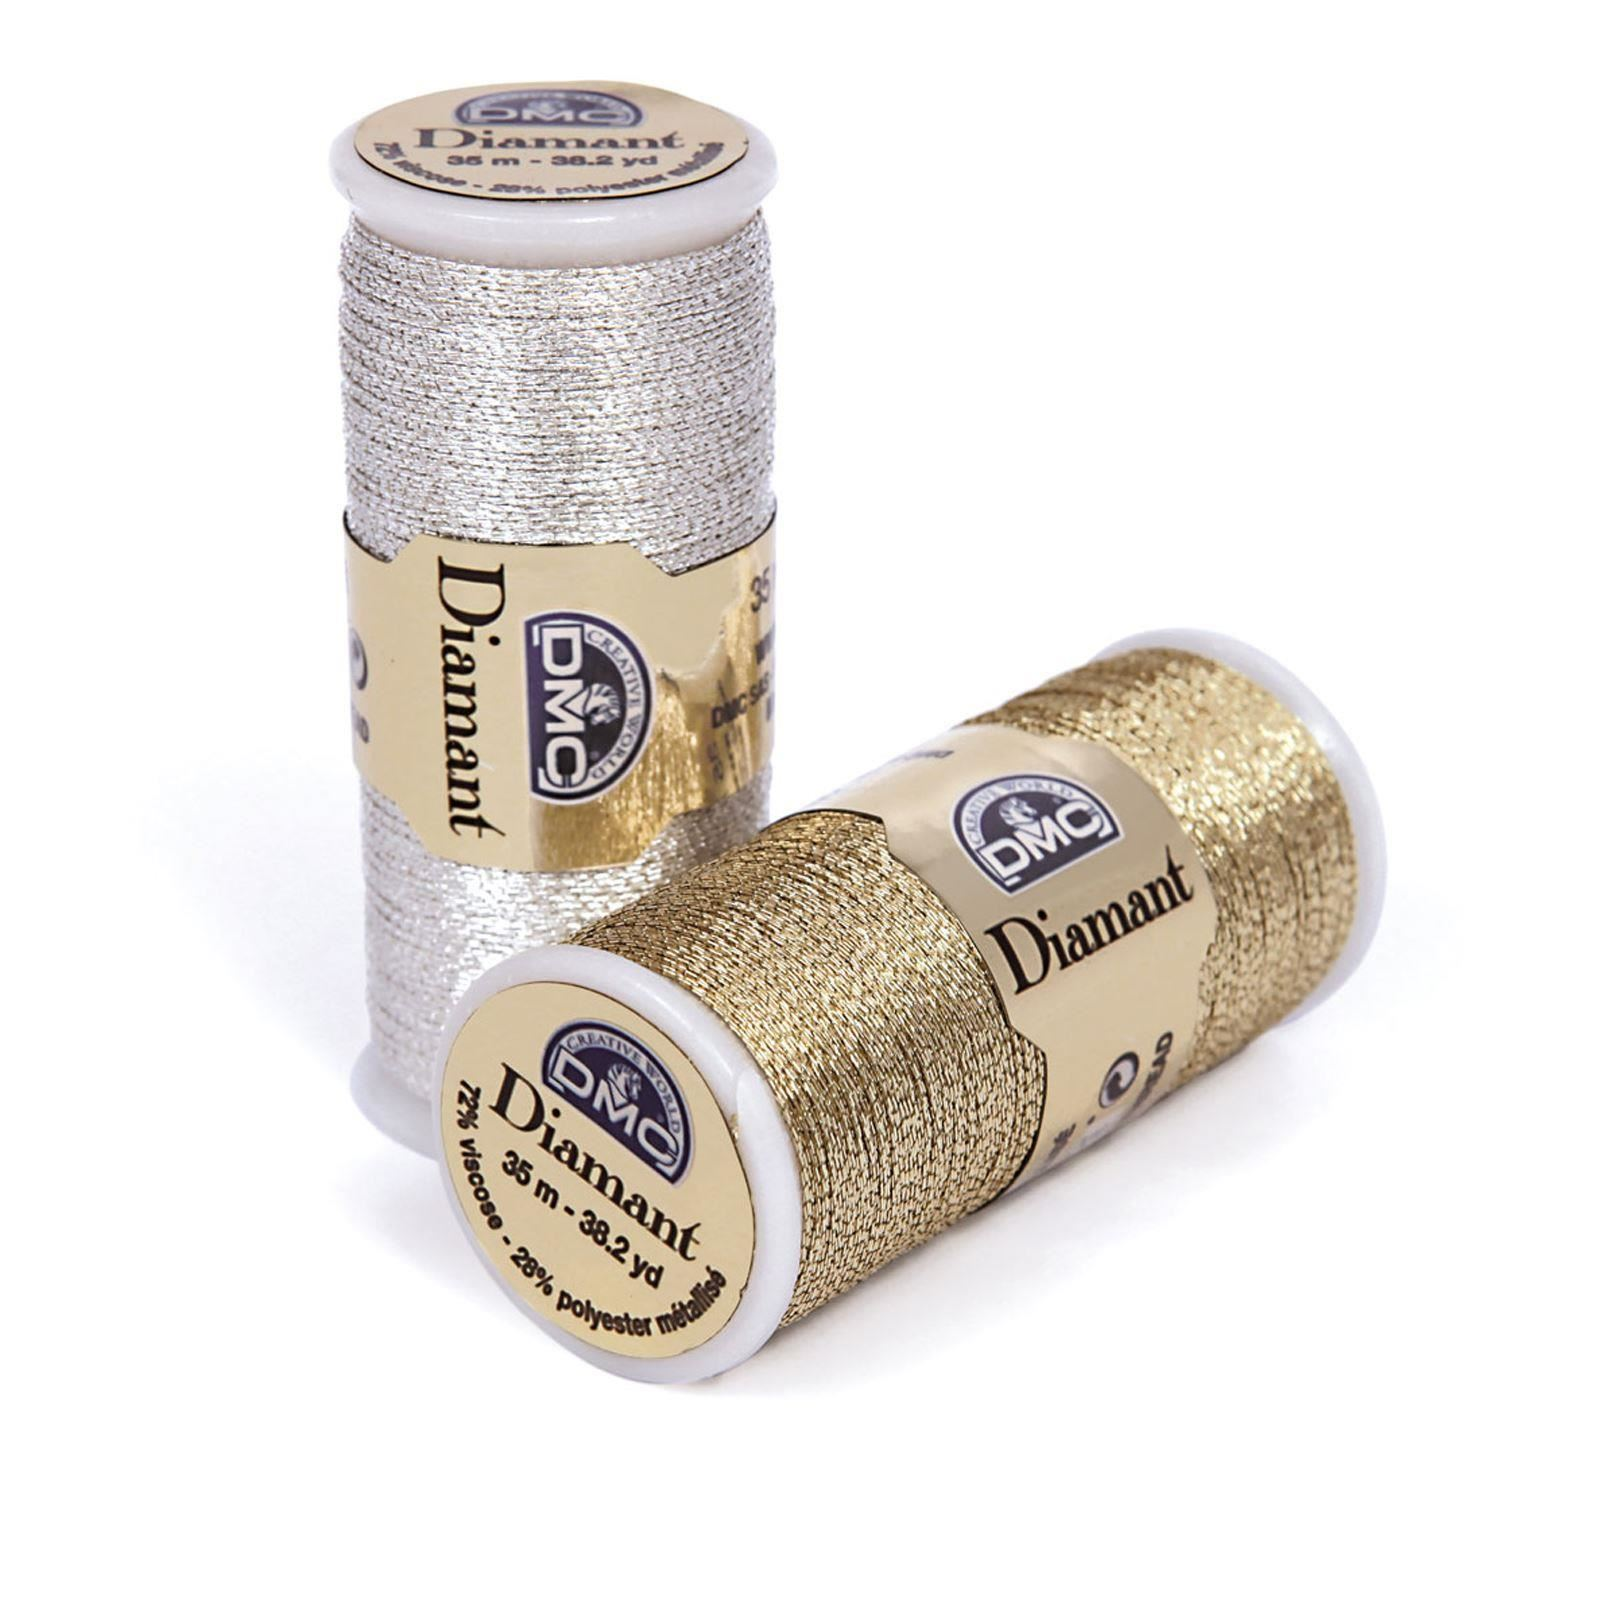 DMC-Diamant-Metallic-Embroidery-Thread-35m-Spool-Cross-Stitch thumbnail 57